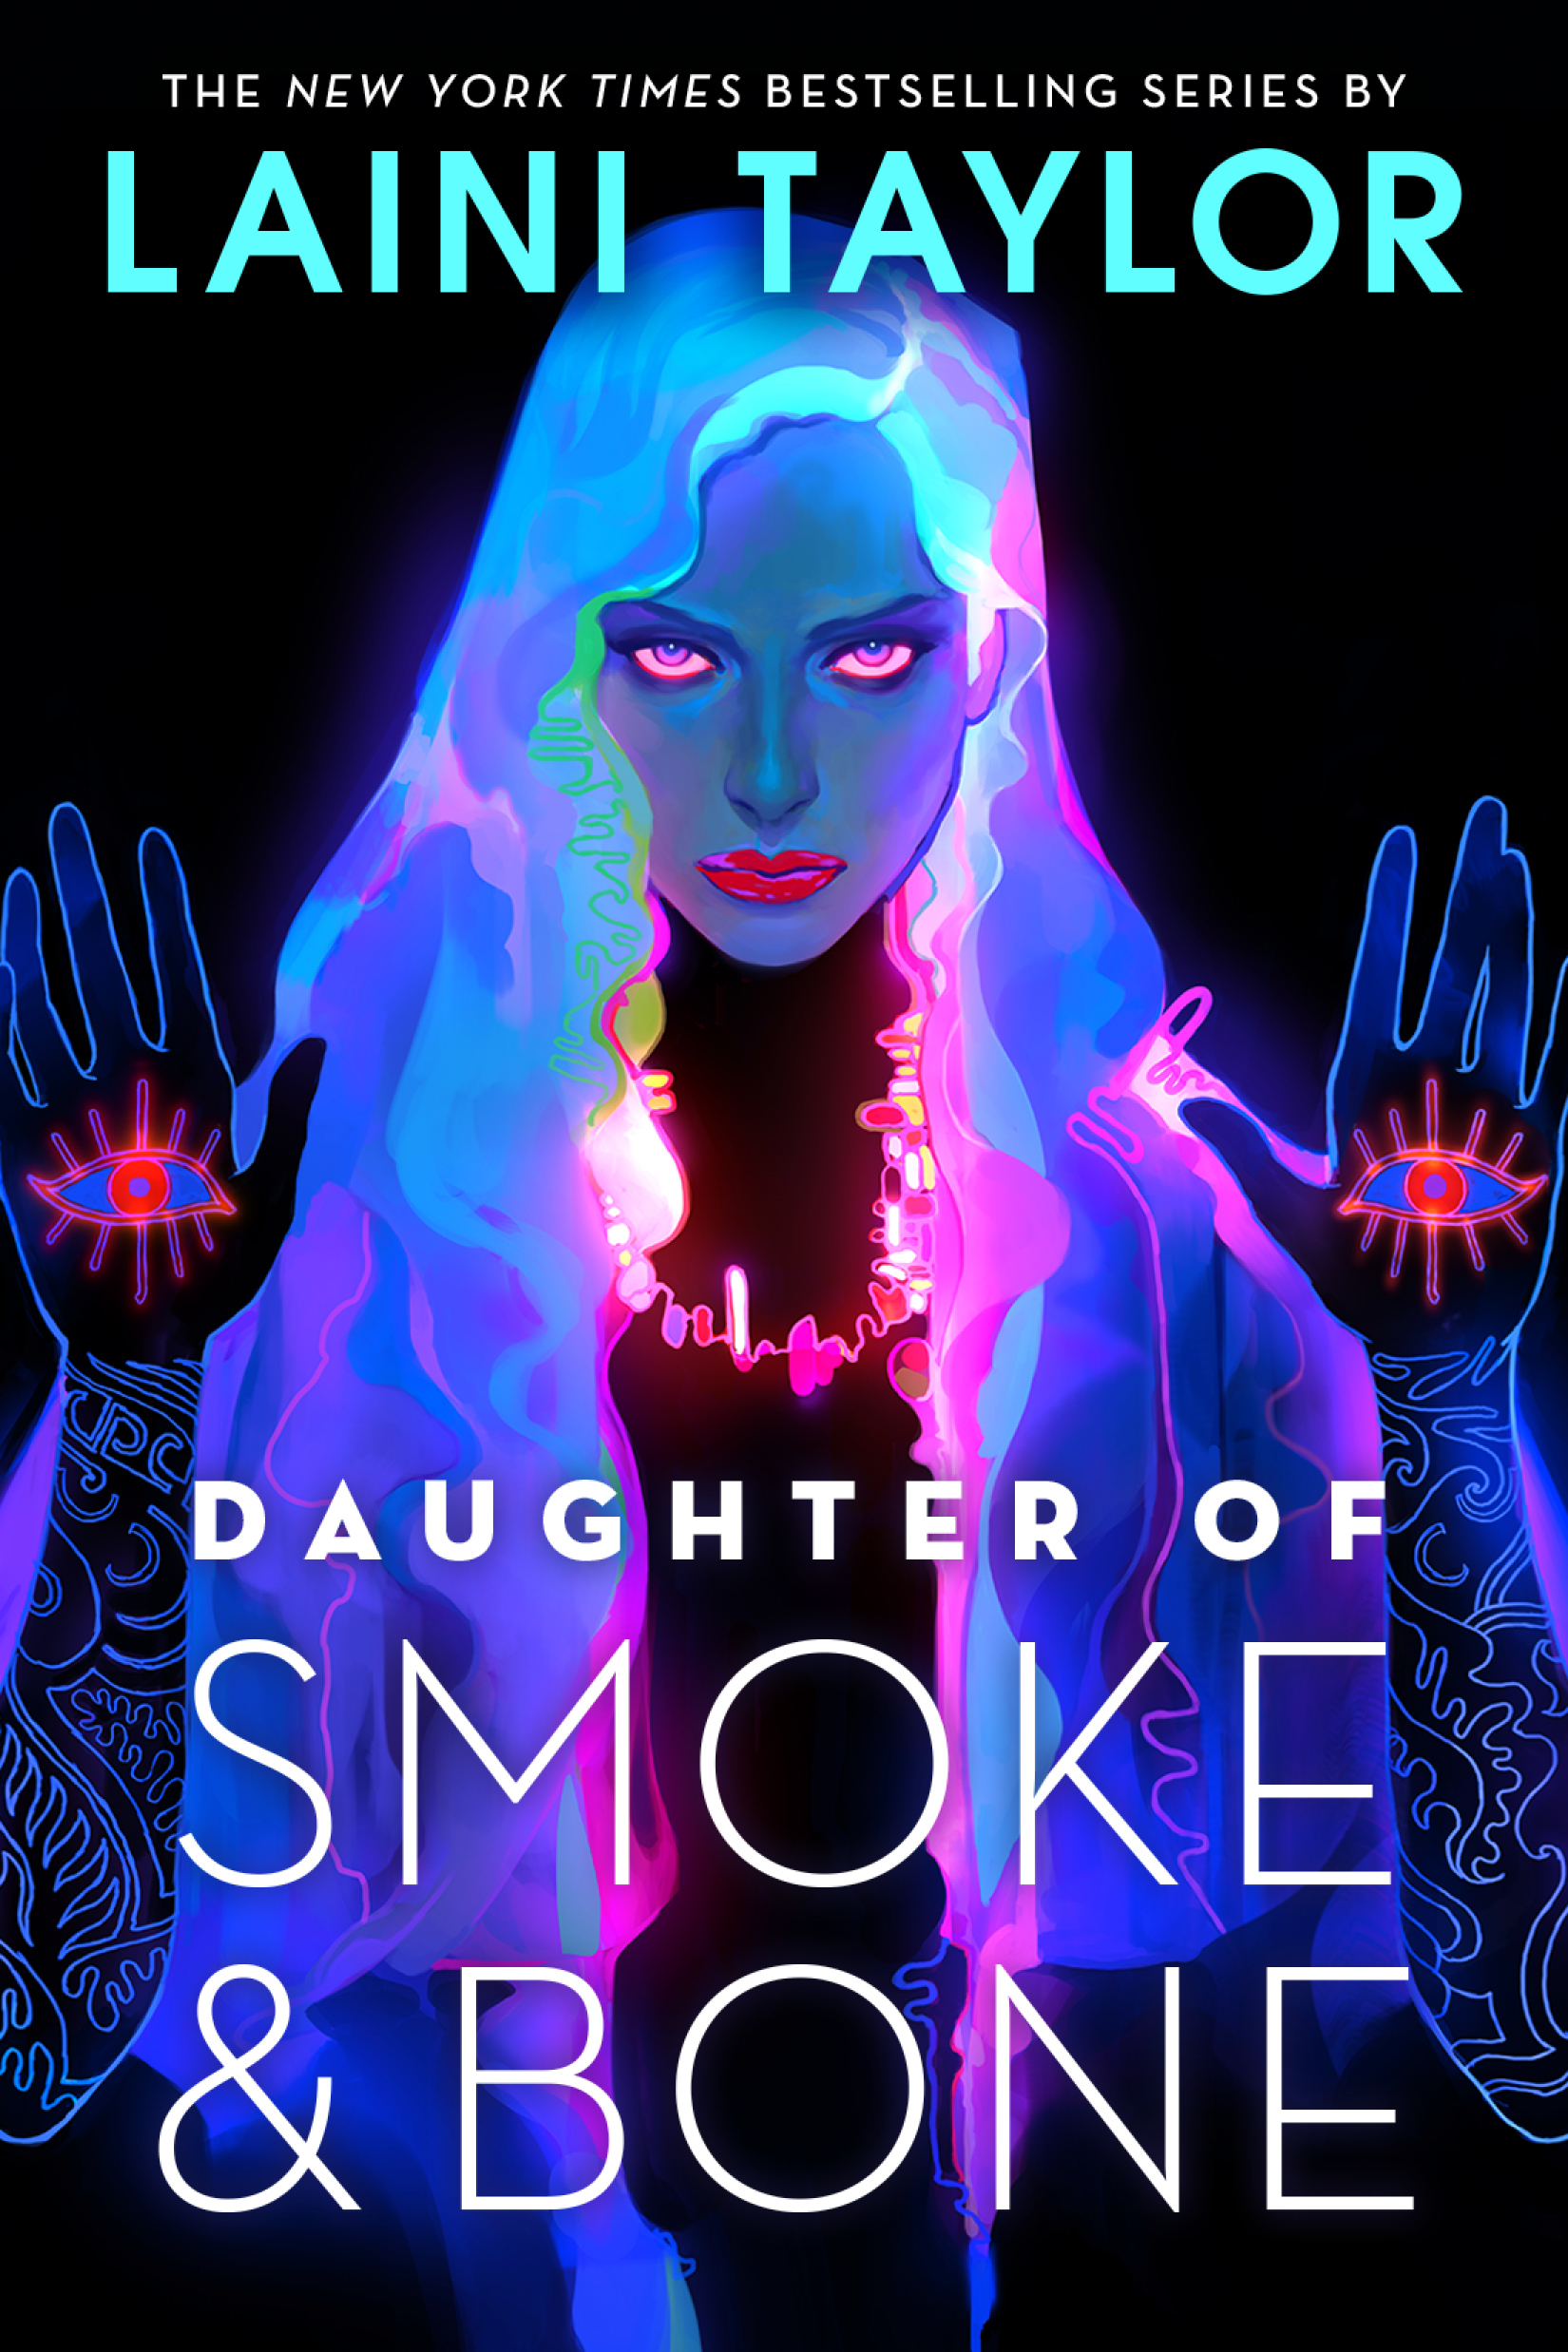 DaughterofSmoke&Bone_9780316459181_FINAL